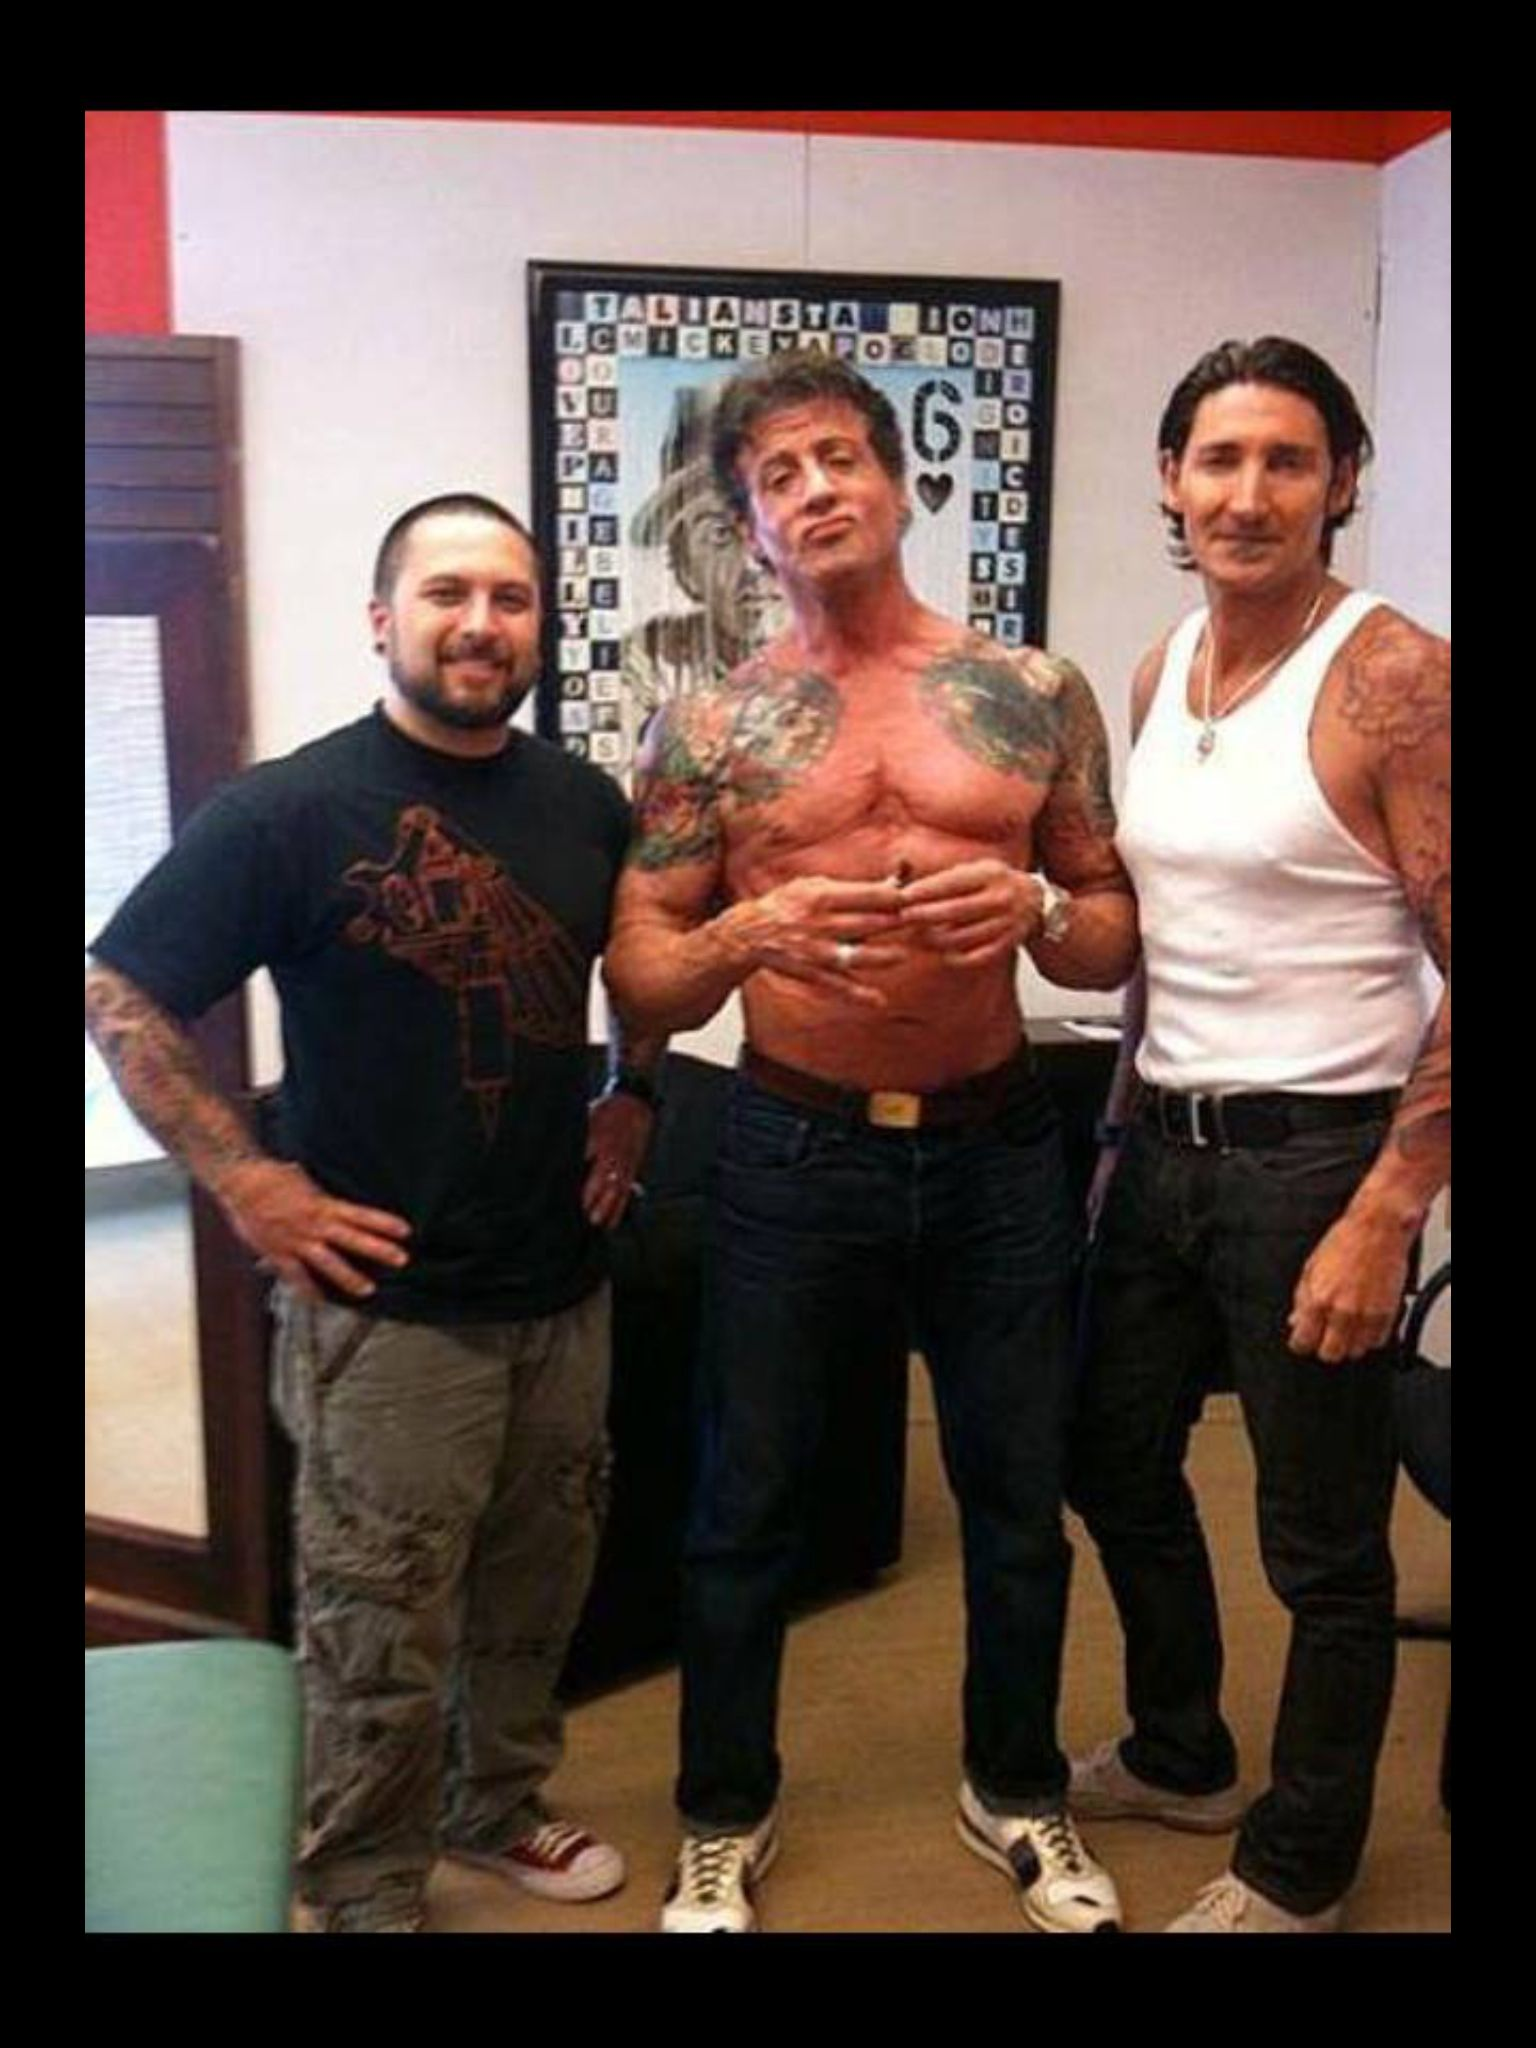 50++ Awesome Sylvester stallone tattoos expendables image ideas